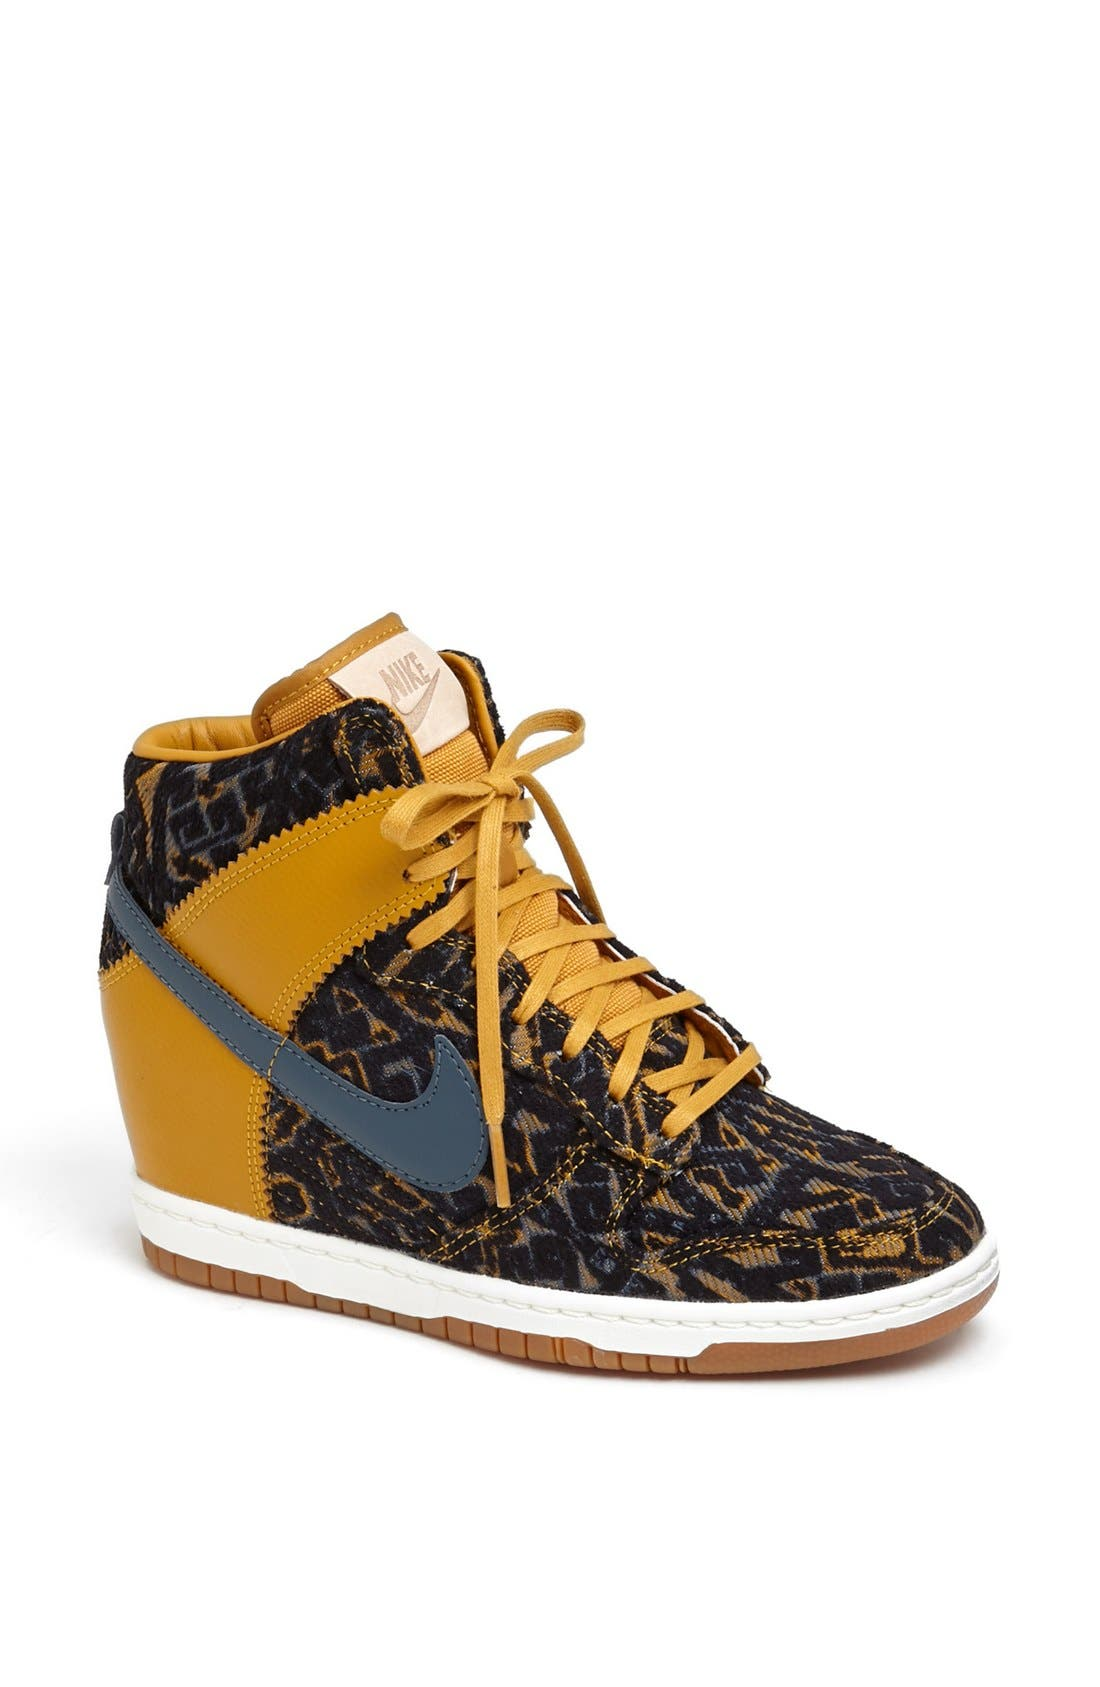 Alternate Image 1 Selected - Nike 'Dunk Sky Hi' Sneaker (Women)